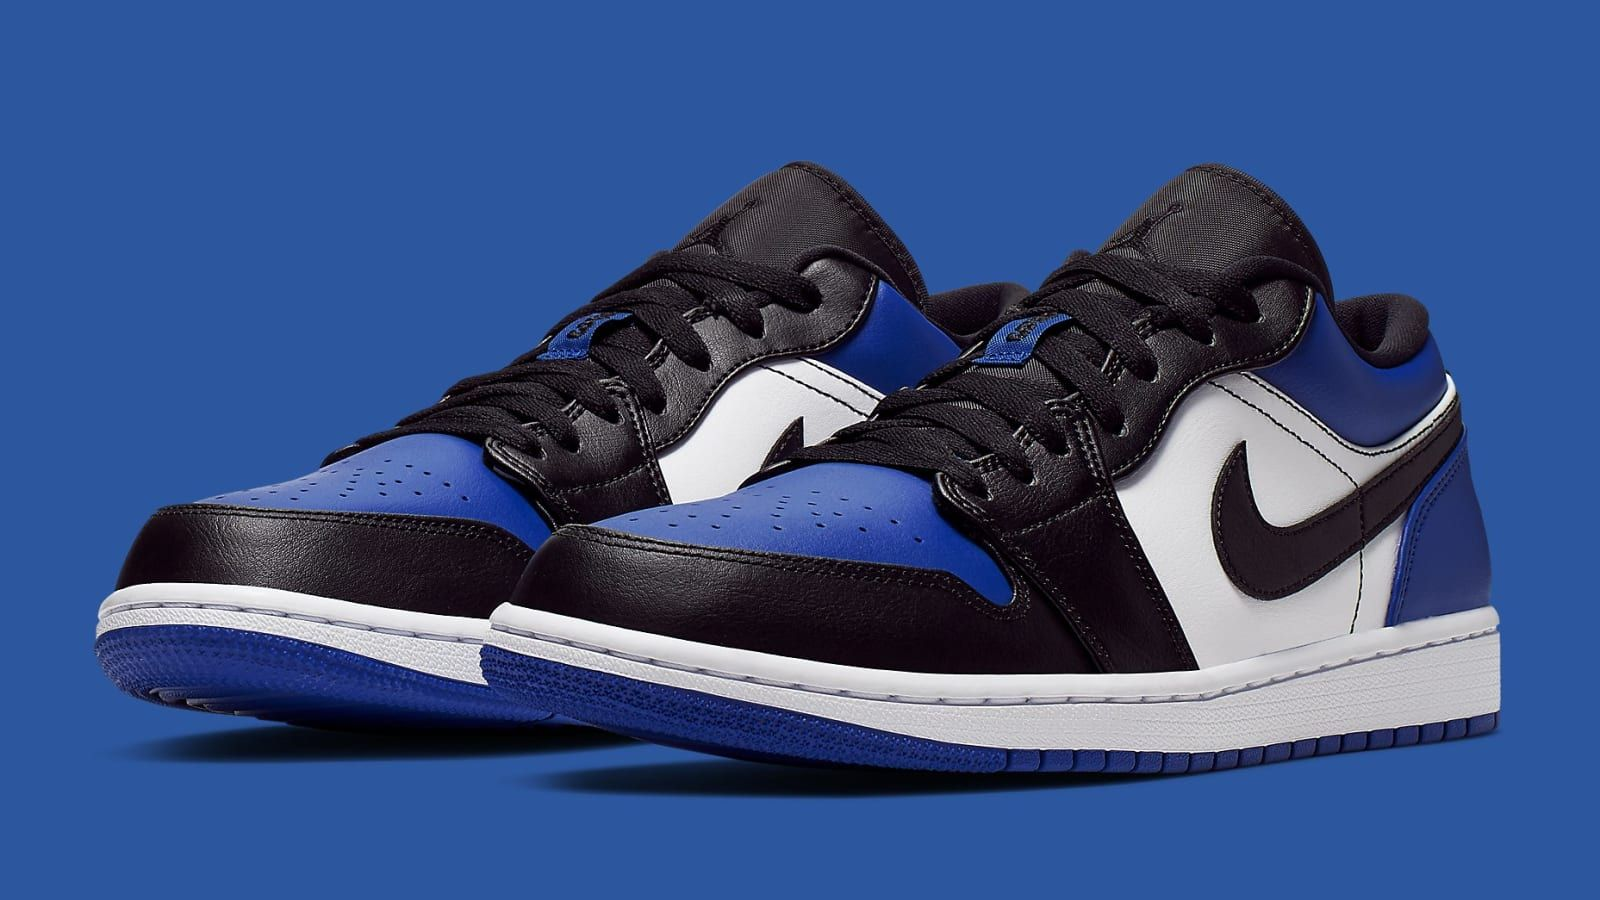 Pin by Ronquan on Nike (With images) Air jordans, Jordan